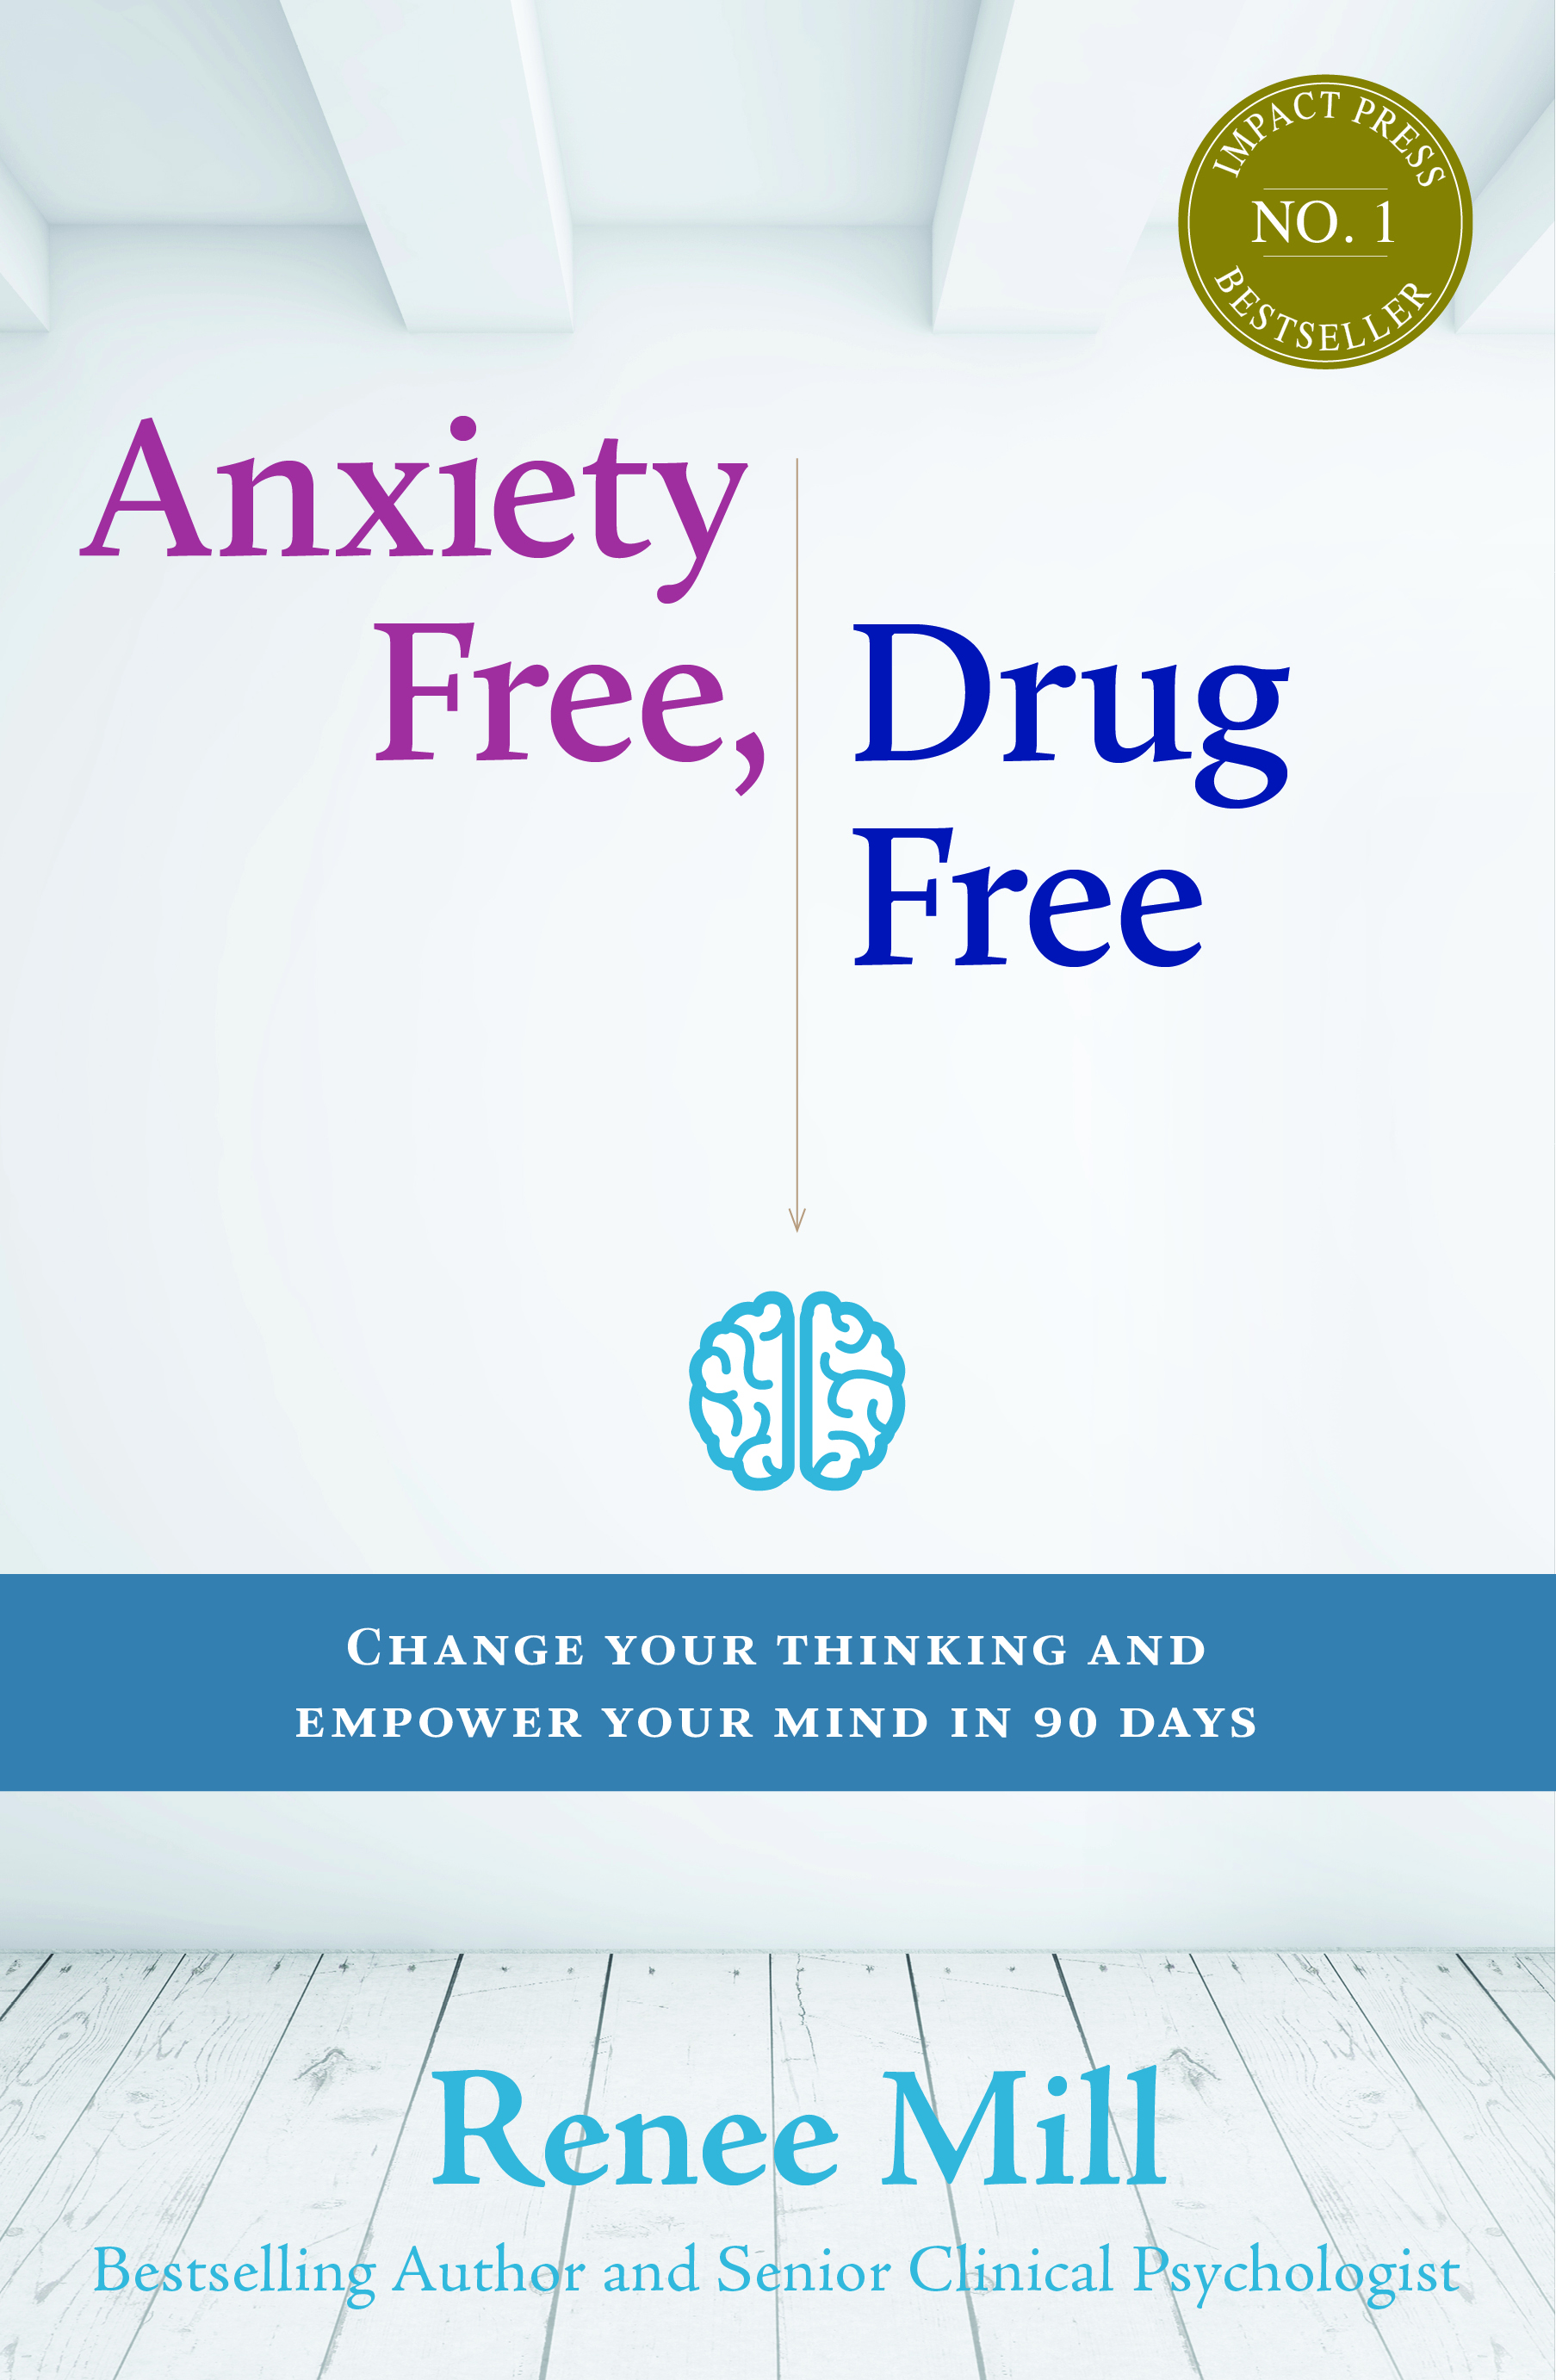 Anxiety Free Drug Free cover_2017 edition.jpg